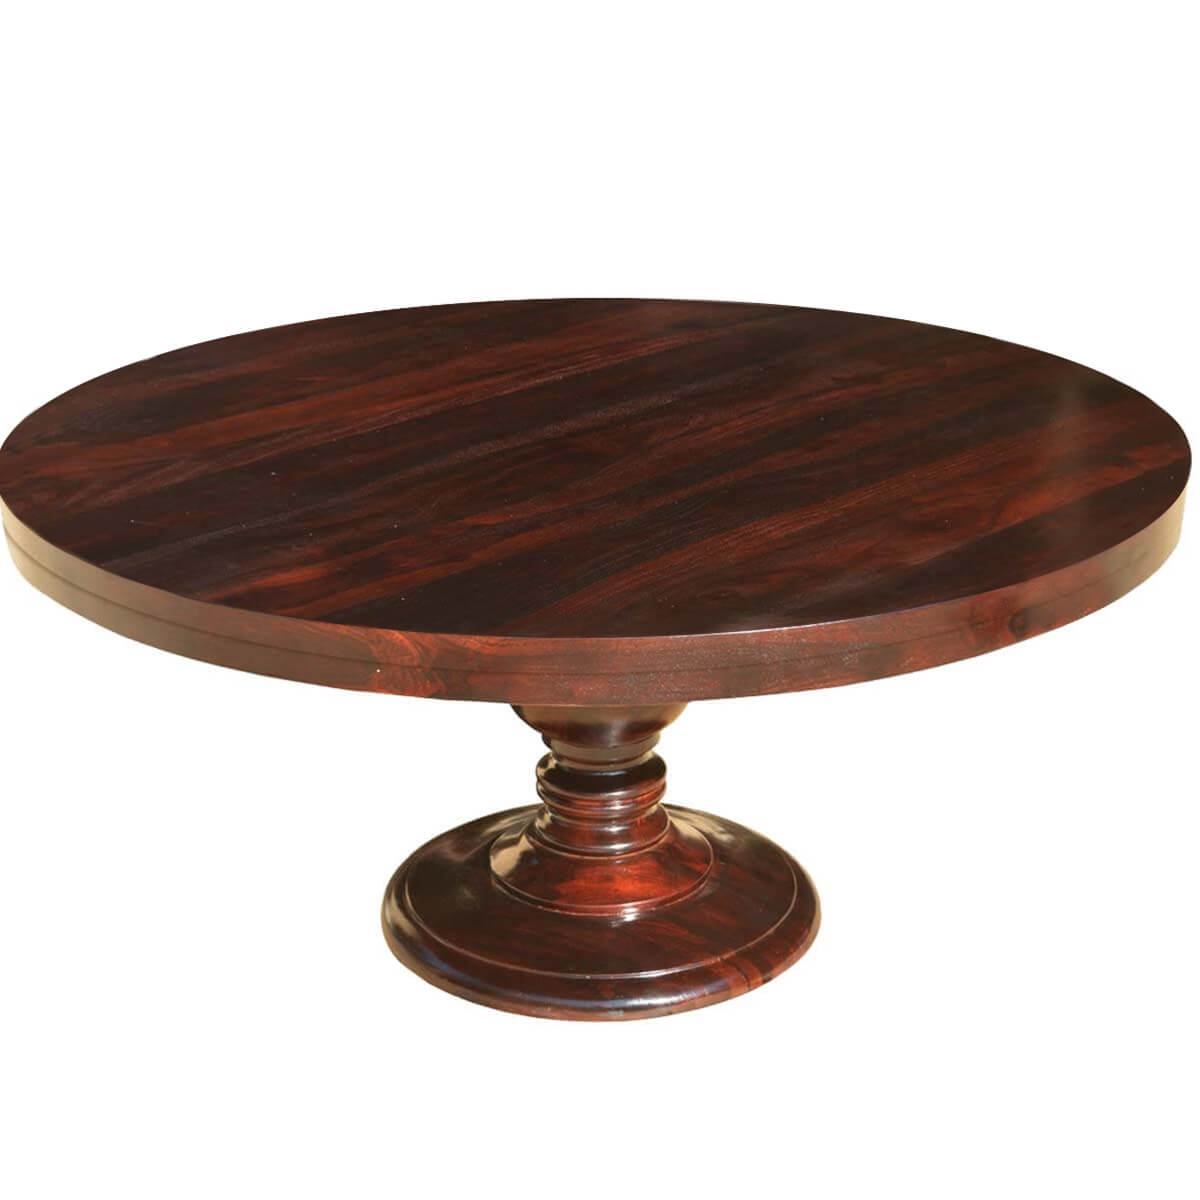 Colonial american solid wood pedestal 72 round dining table for Solid wood round dining room table